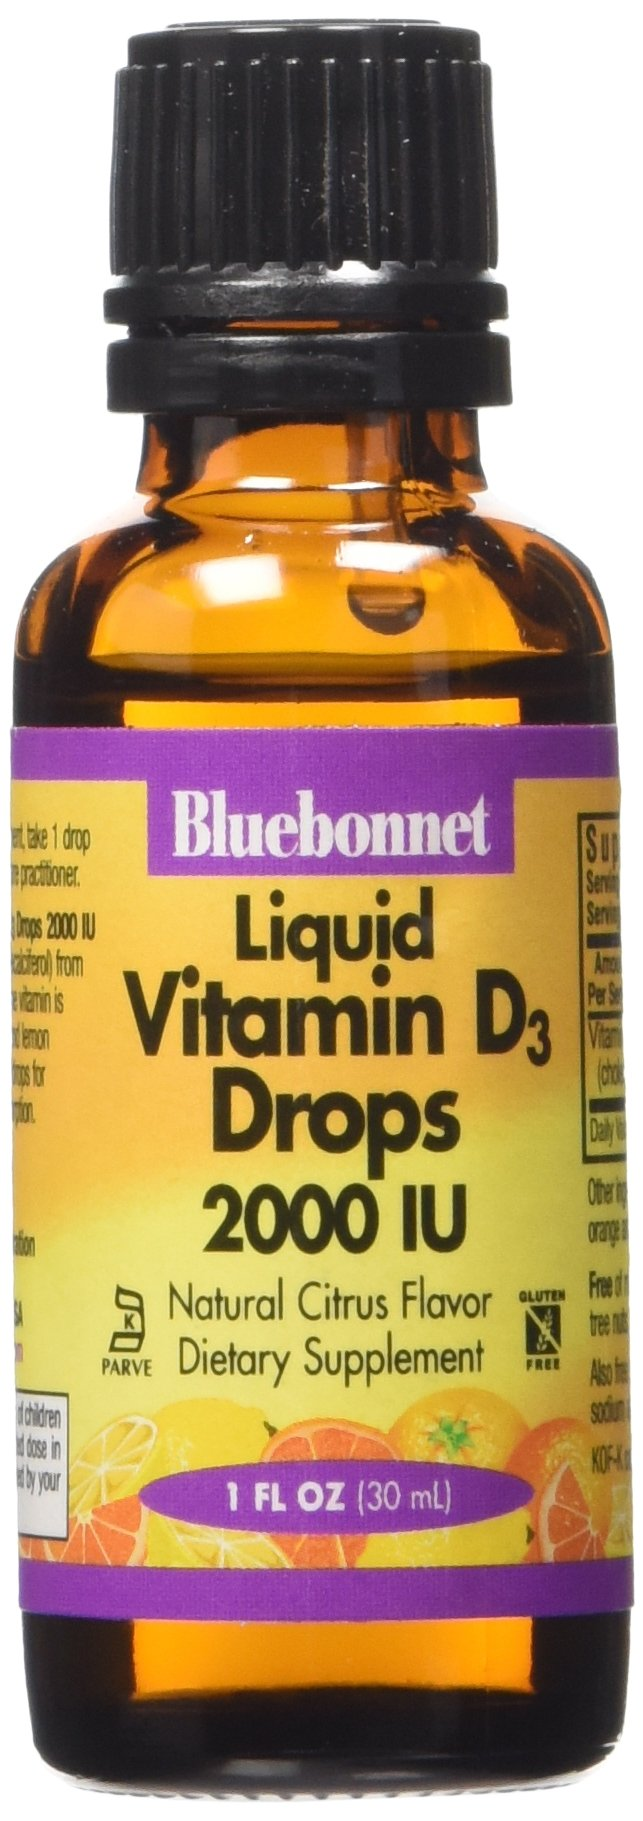 Bluebonnet Liquid Vitamin D3 Drops 2000 IU, Citrus, 1 Ounce